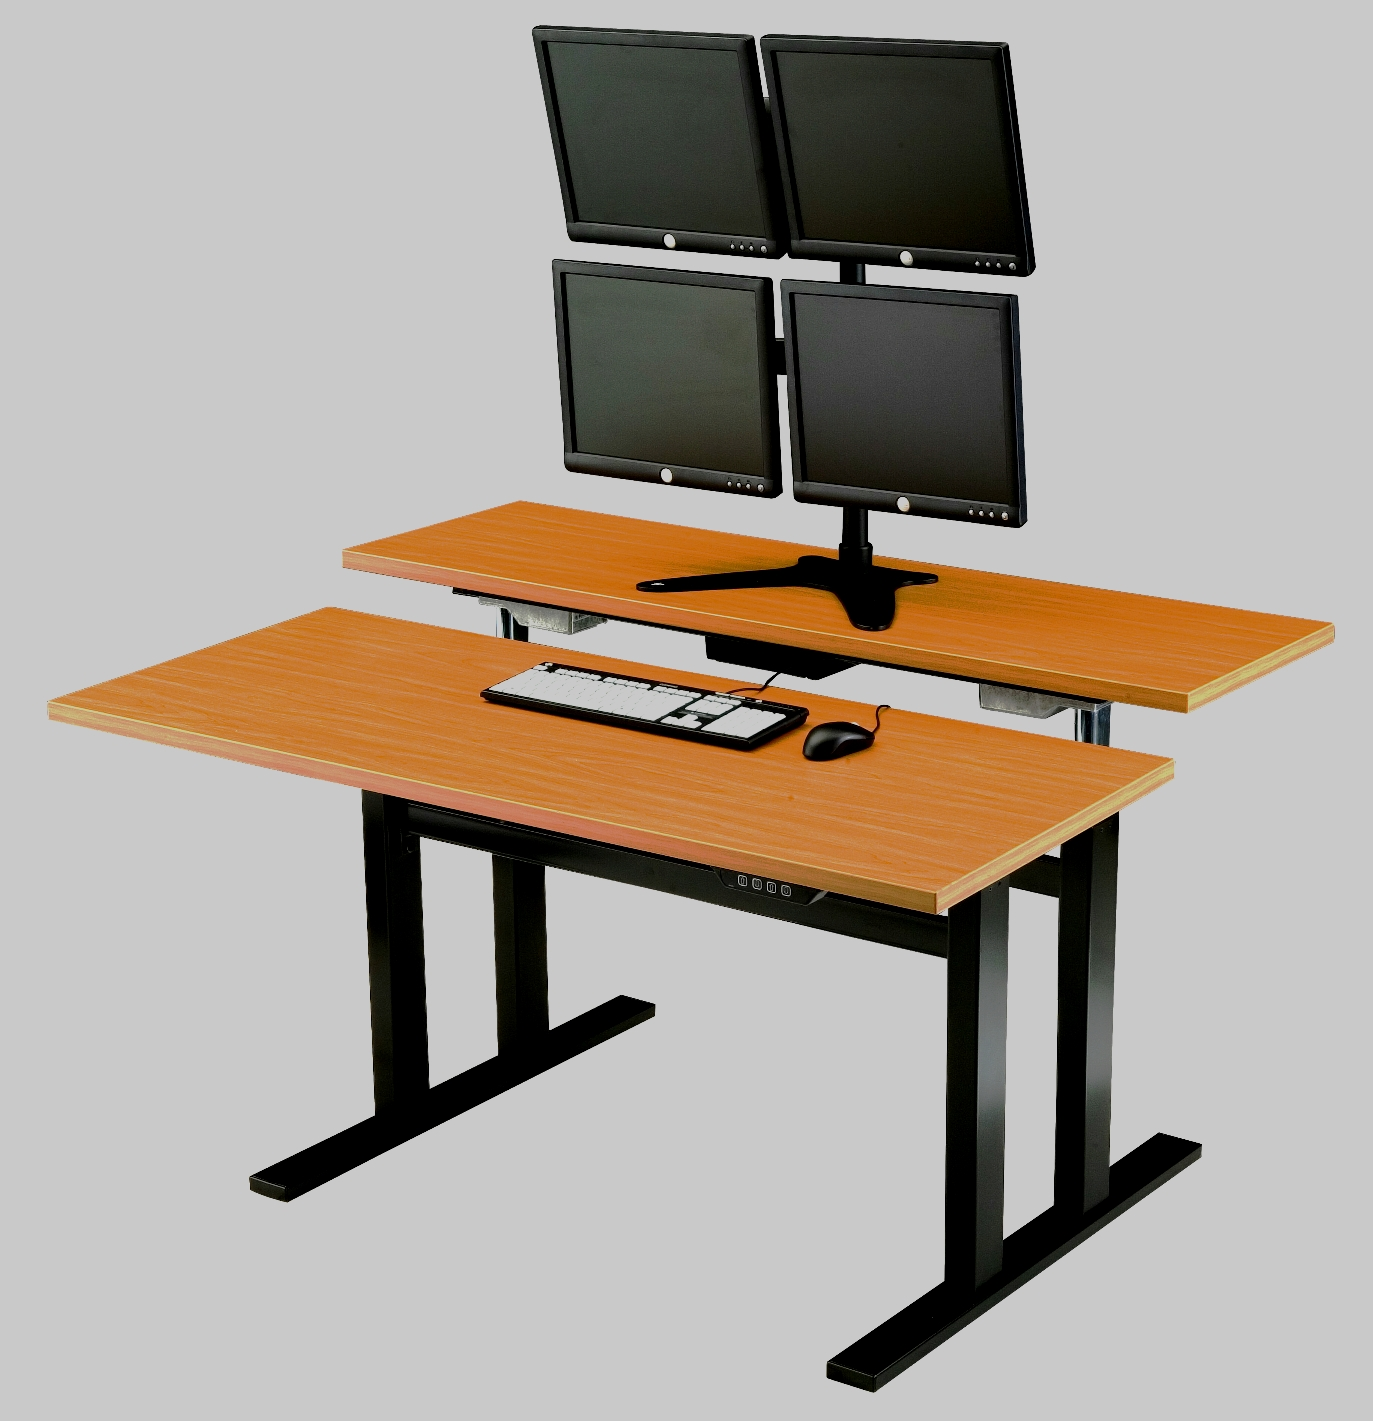 Ergonomic Computer Desk Sit Stand Workstation Adjustable